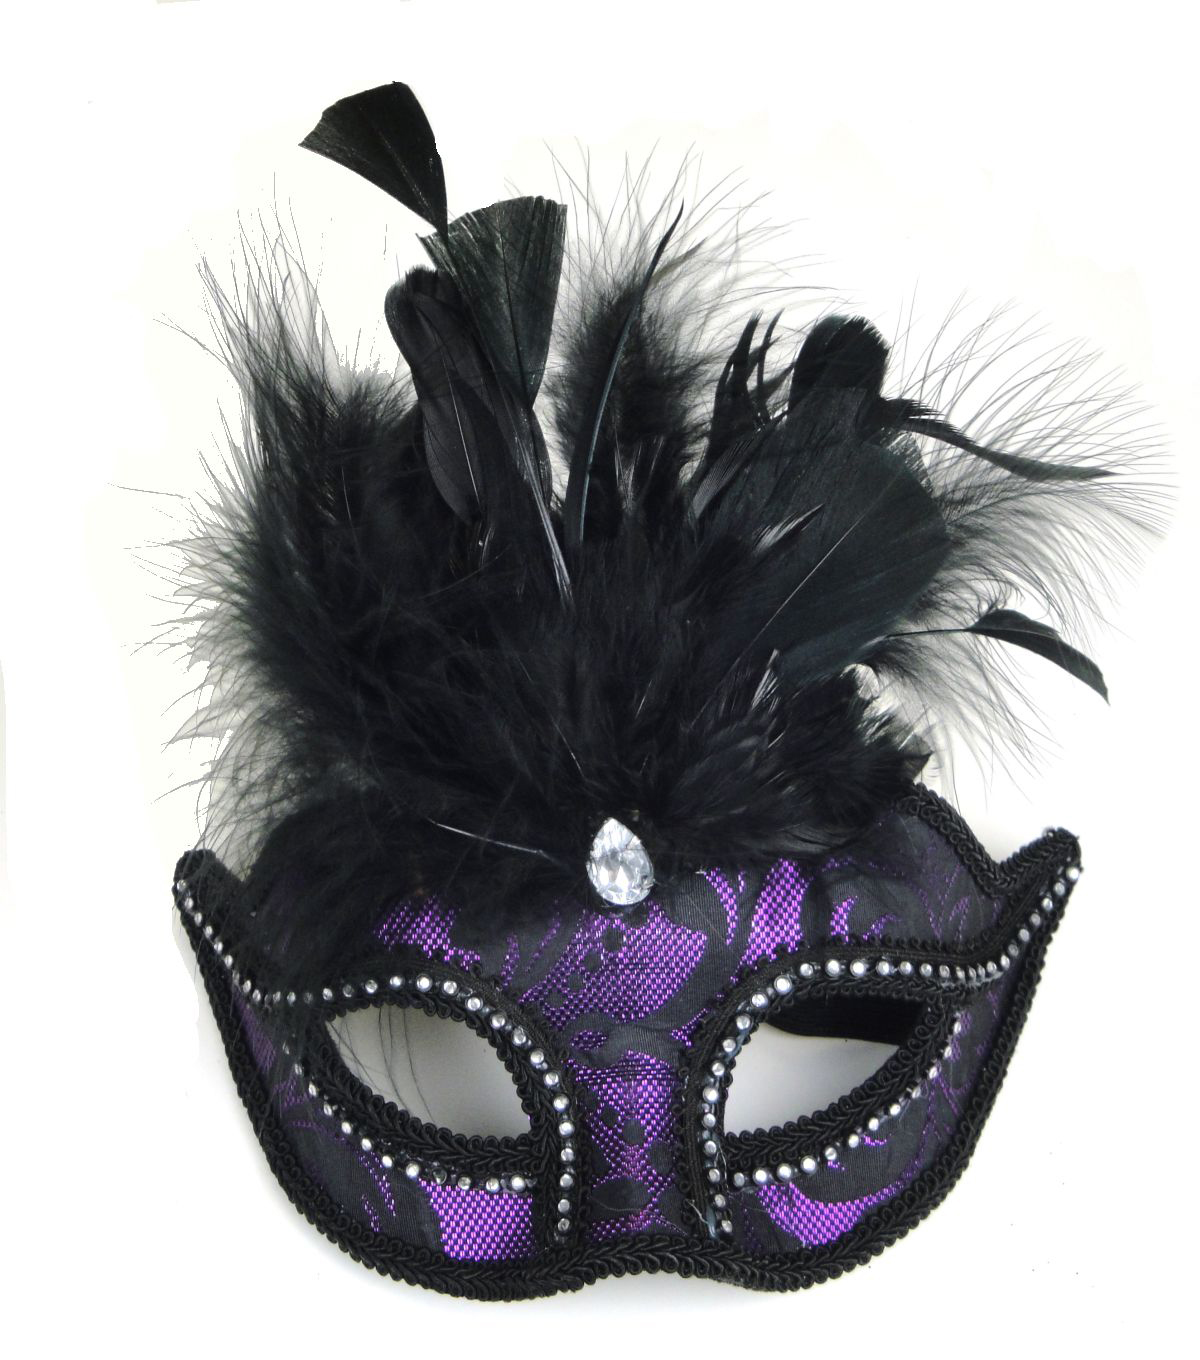 Maker's Halloween Brocade Mask With Feathers-Black & Purple